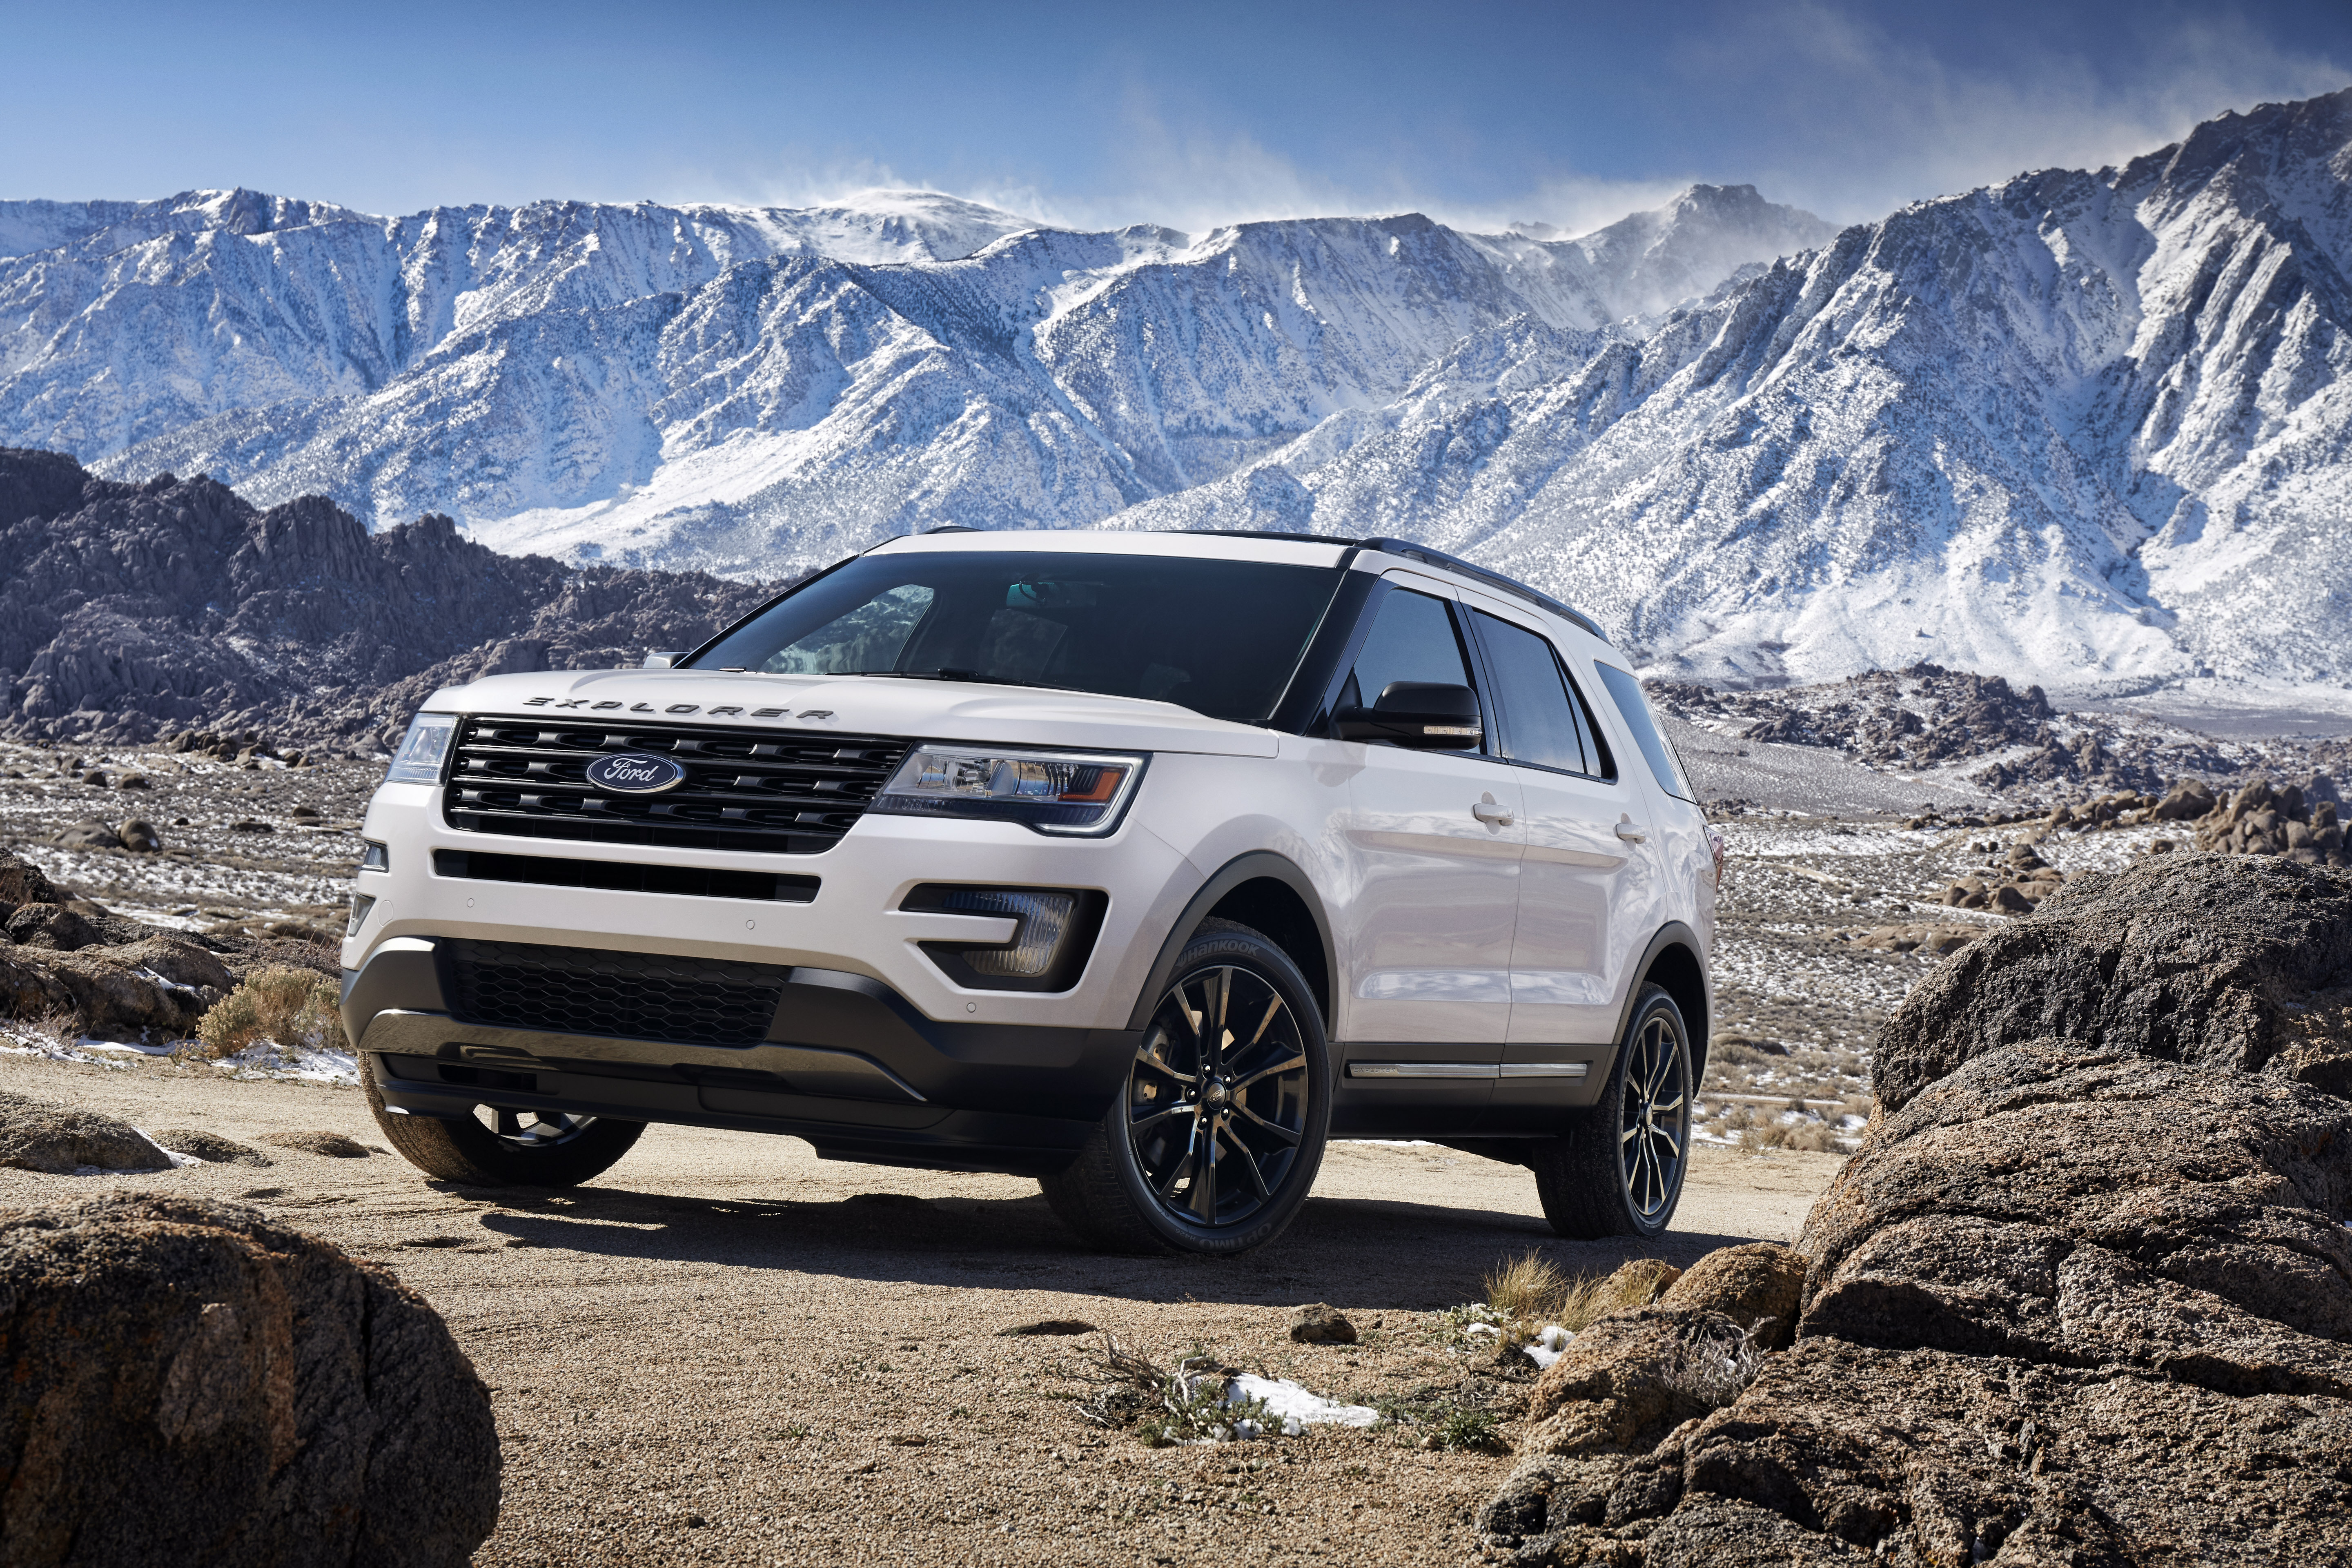 kuga reviews ford carbuyer suvs review suv